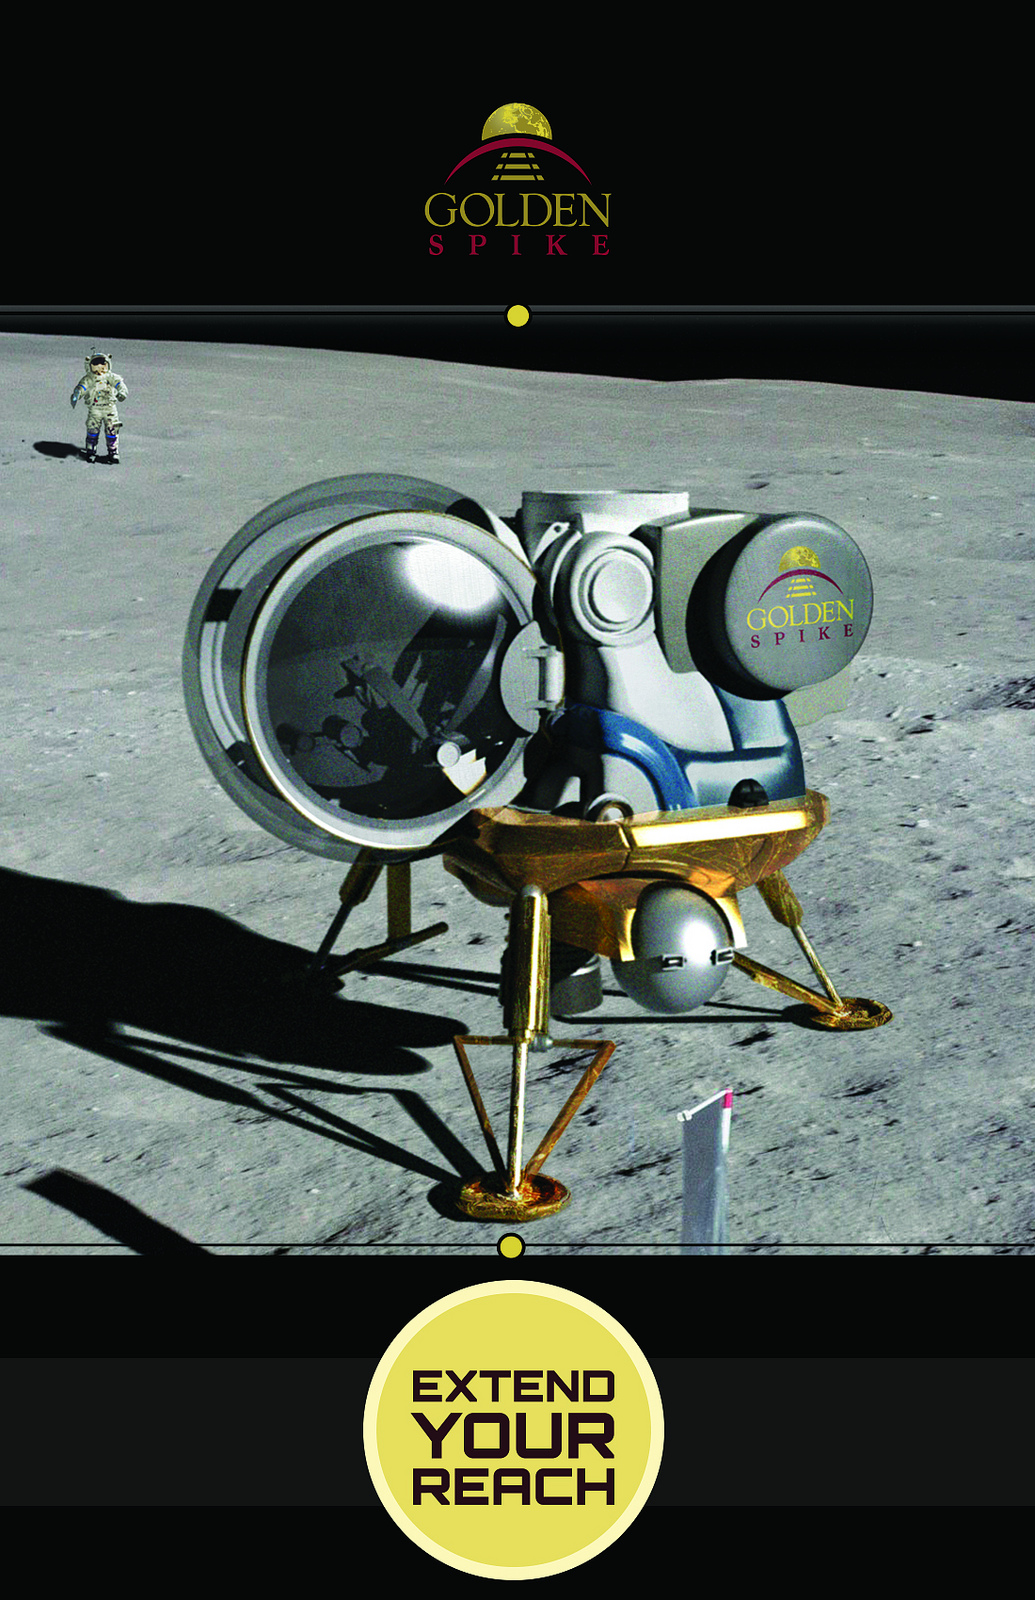 Golden Spike Moon Lander